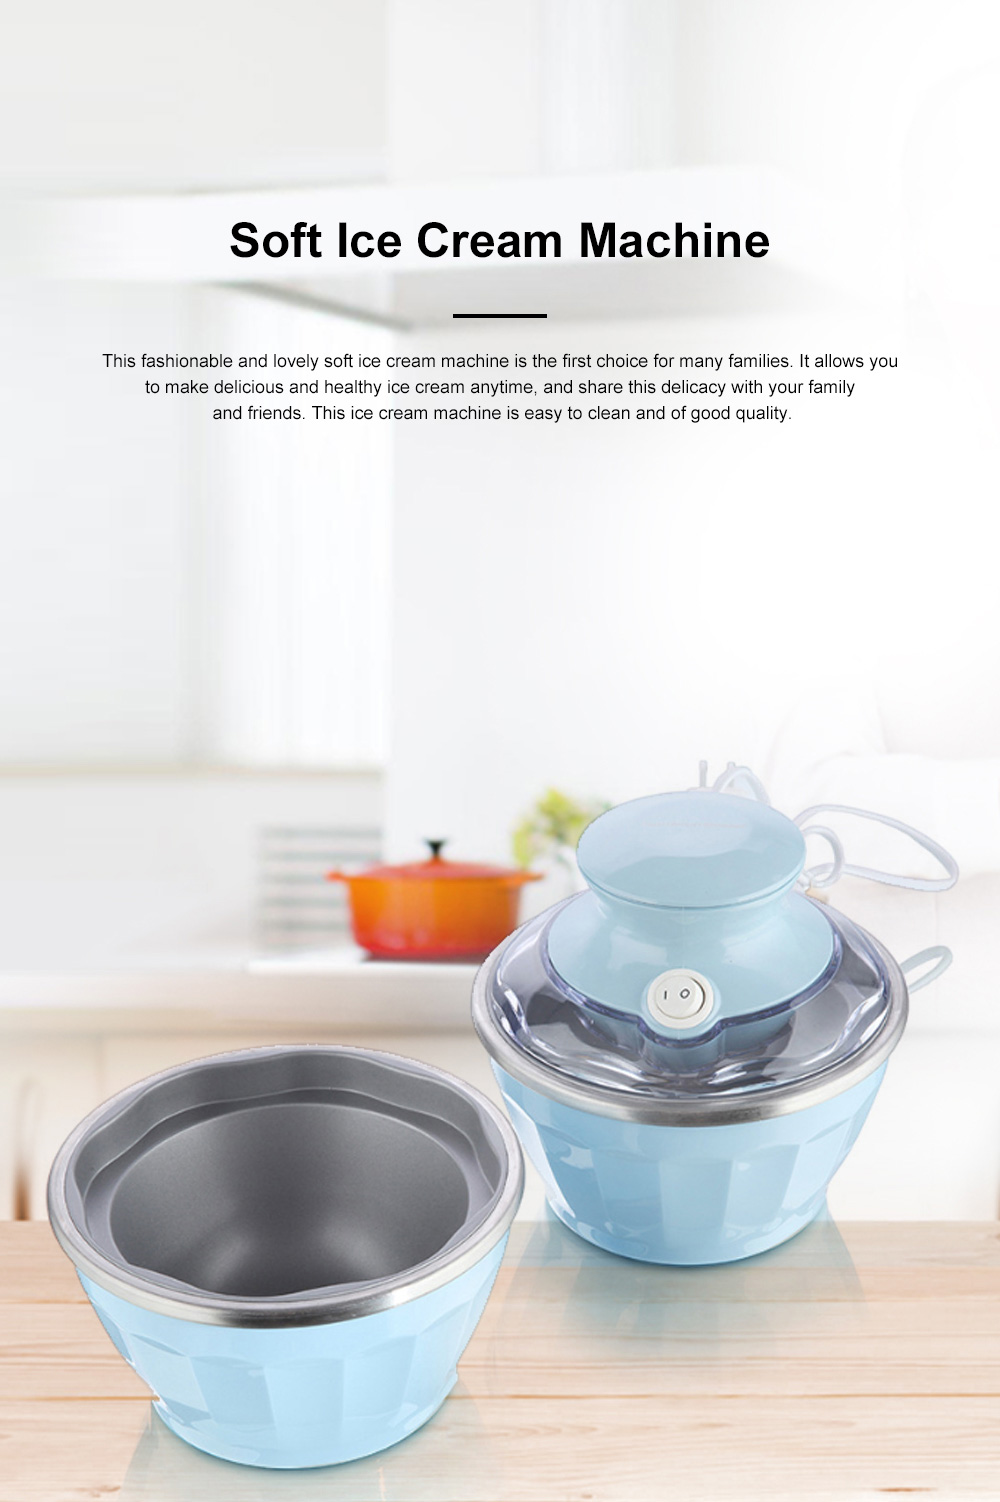 Double Bowl Soft Ice Cream Machine Home Fully Automated Ice Cream Maker Ice-cream Machine 0